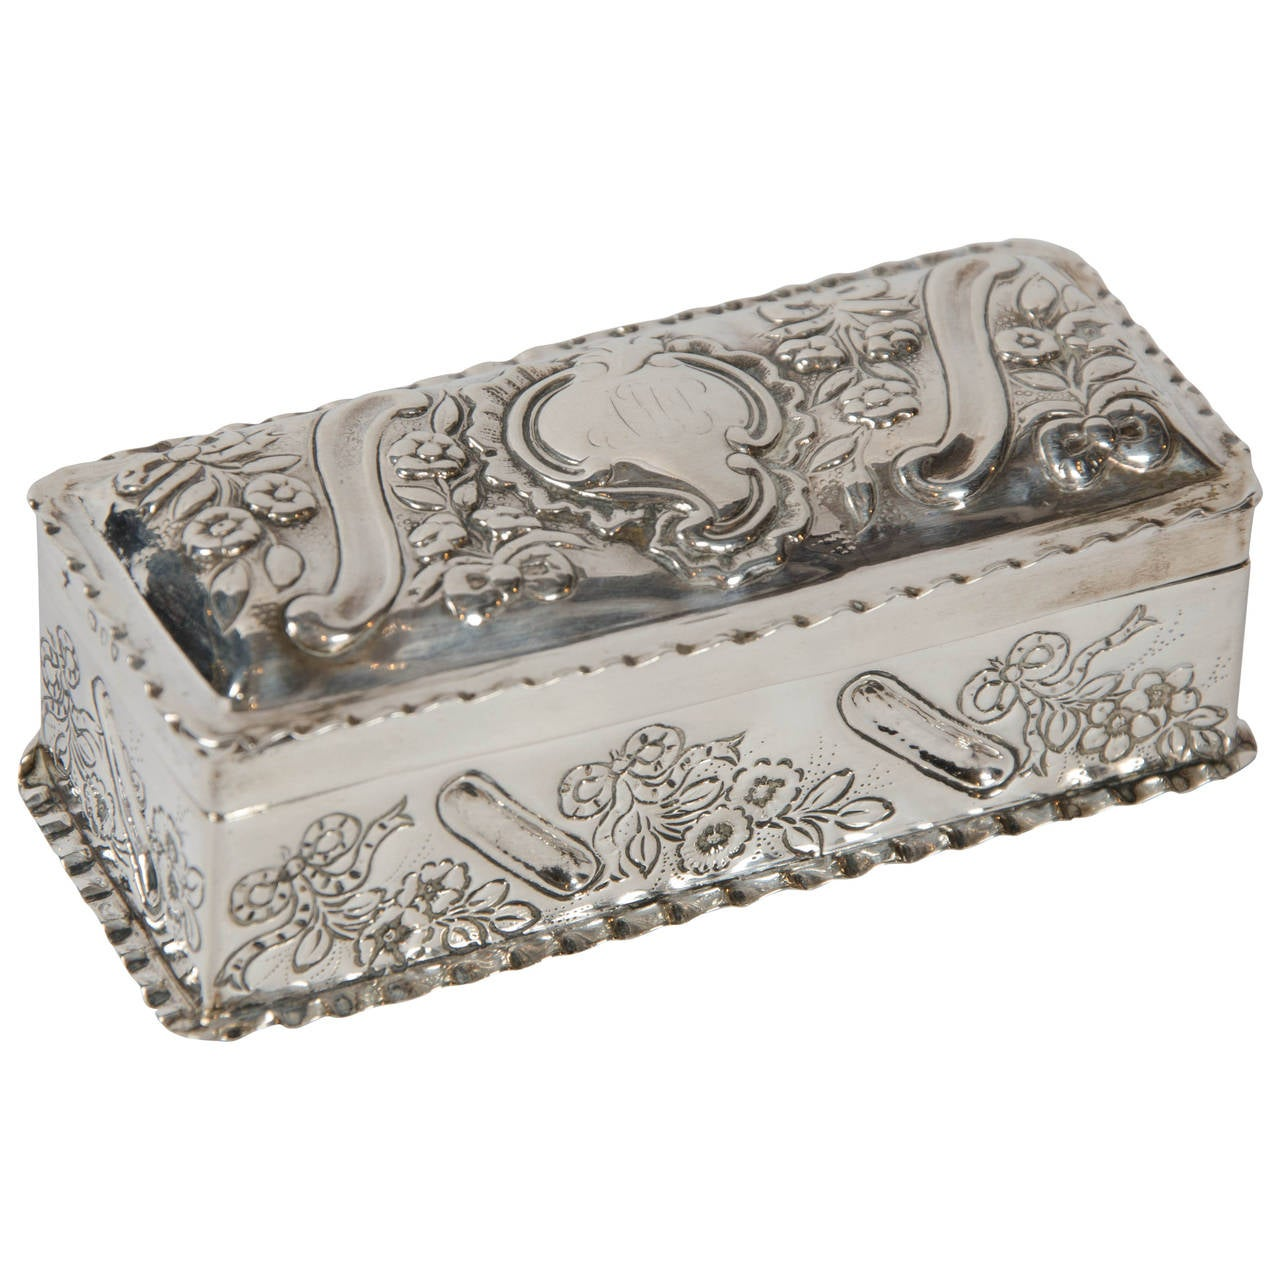 repousse silver box at 1stdibs